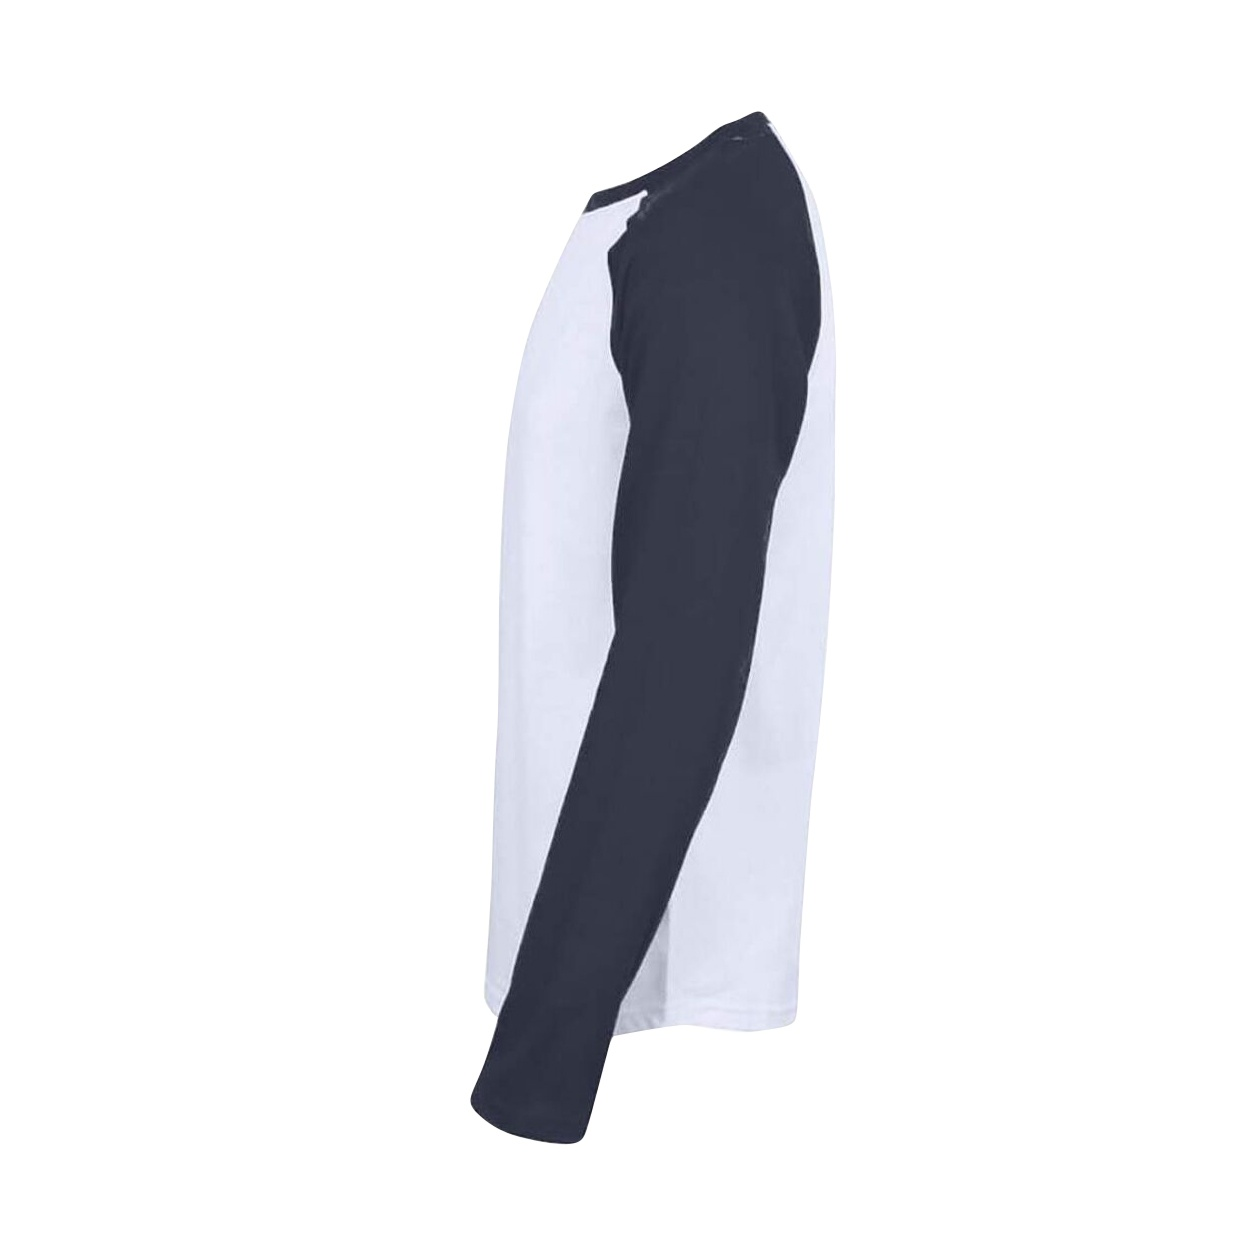 NFL New York Giants Men's Raglan Team Logo Long Sleeve T-Shirt,White, Medium Loving this shirt! The fit was what I was looking for with the